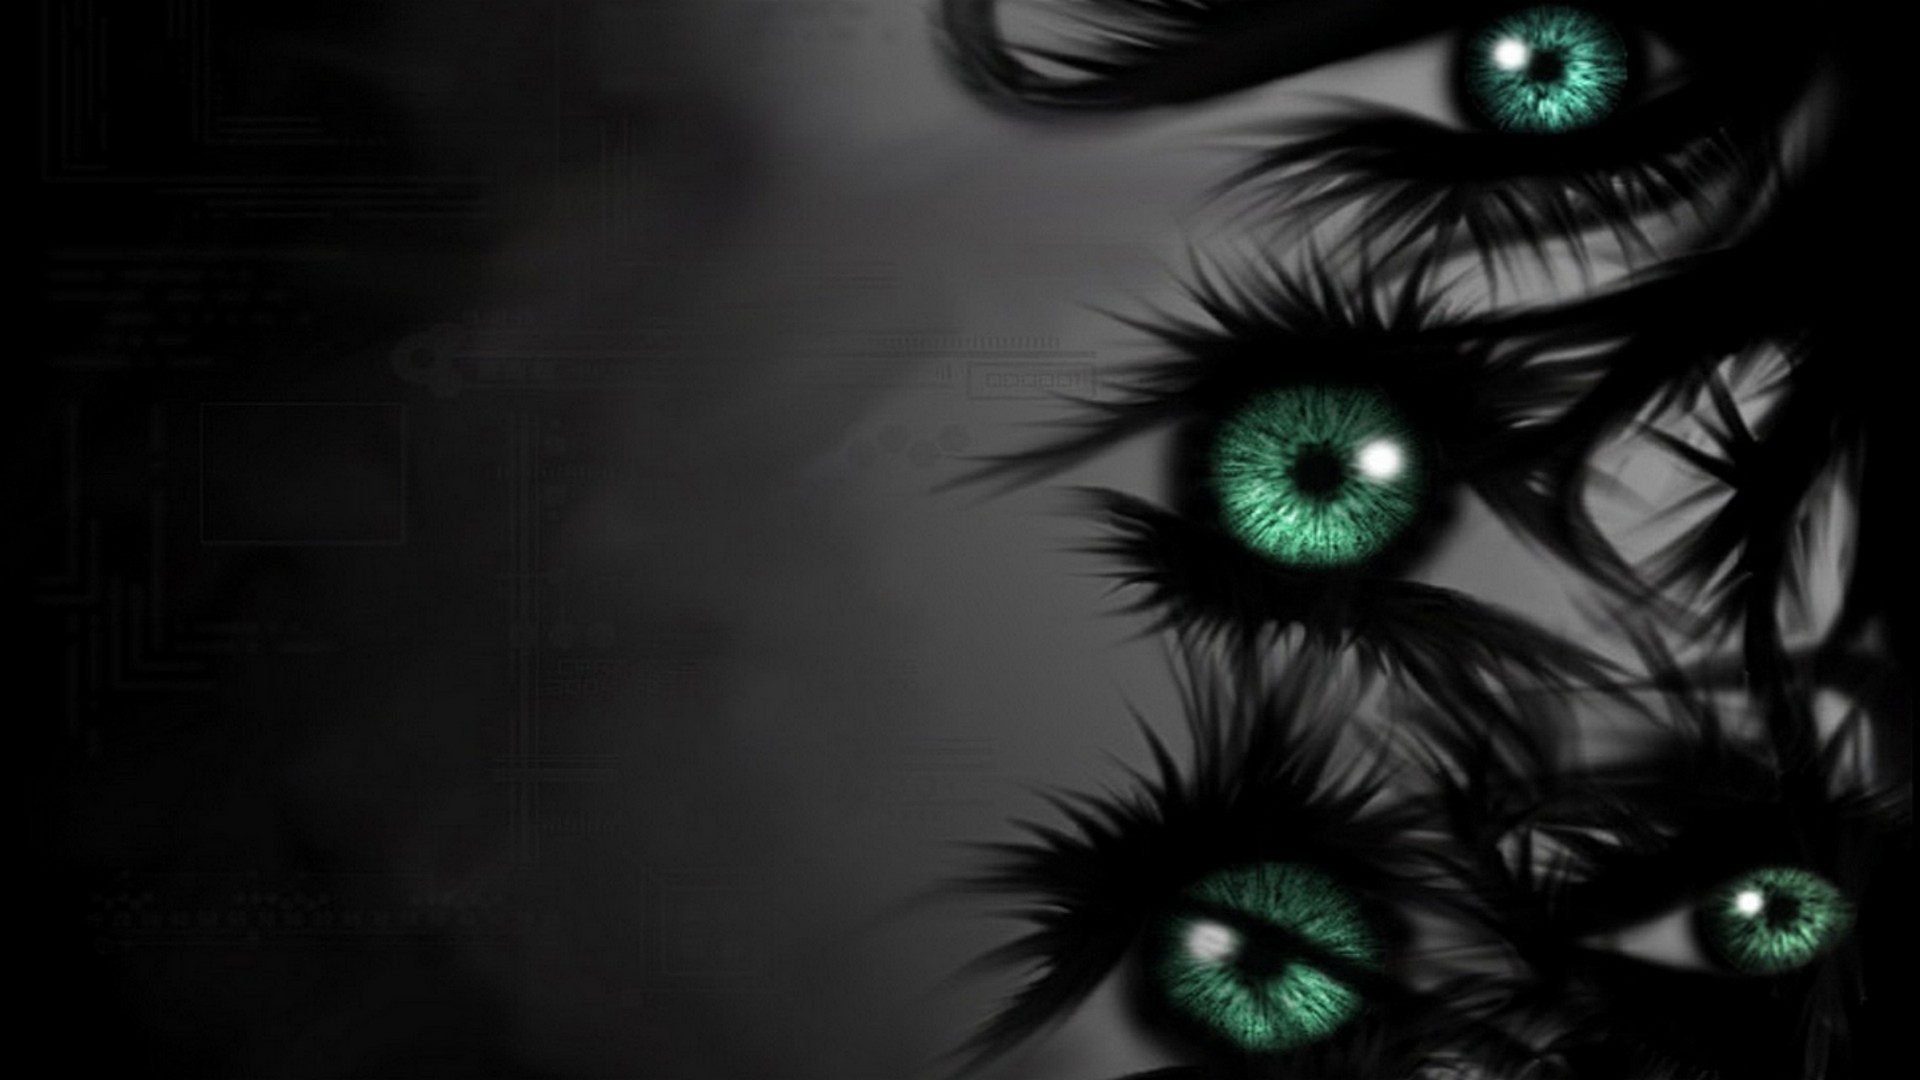 Abstract Eyes Dark Darkness Wallpaper 1920x1080 209945